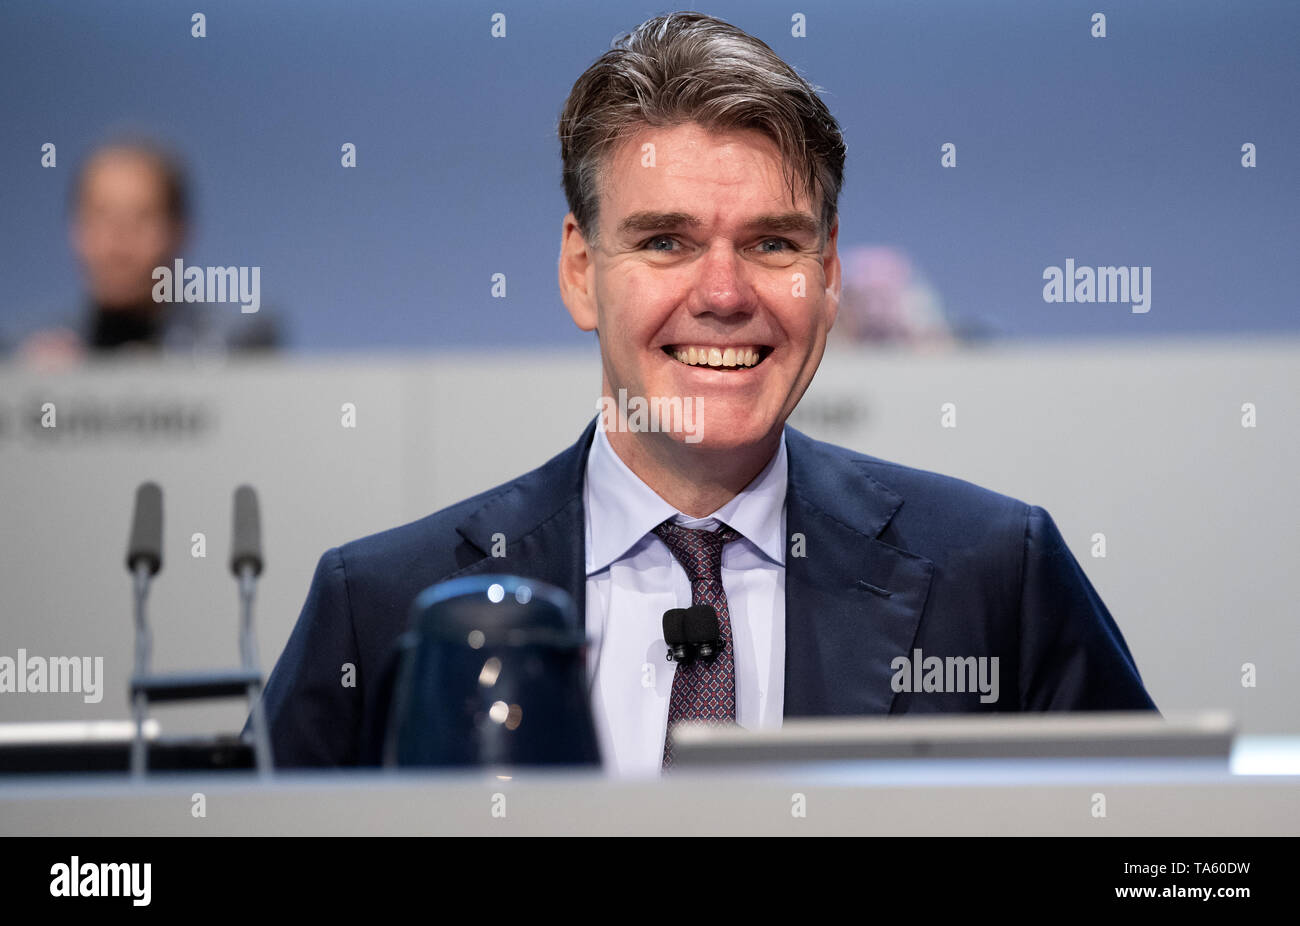 Munich, Germany. 22nd May, 2019. Joachim Drees, CEO of MAN SE, sits on the podium before the start of the Annual General Meeting. The bus and truck manufacturer now owns 95 percent of the VW subsidiary Traton SE, which plans to go public shortly. Credit: Sven Hoppe/dpa/Alamy Live News - Stock Image